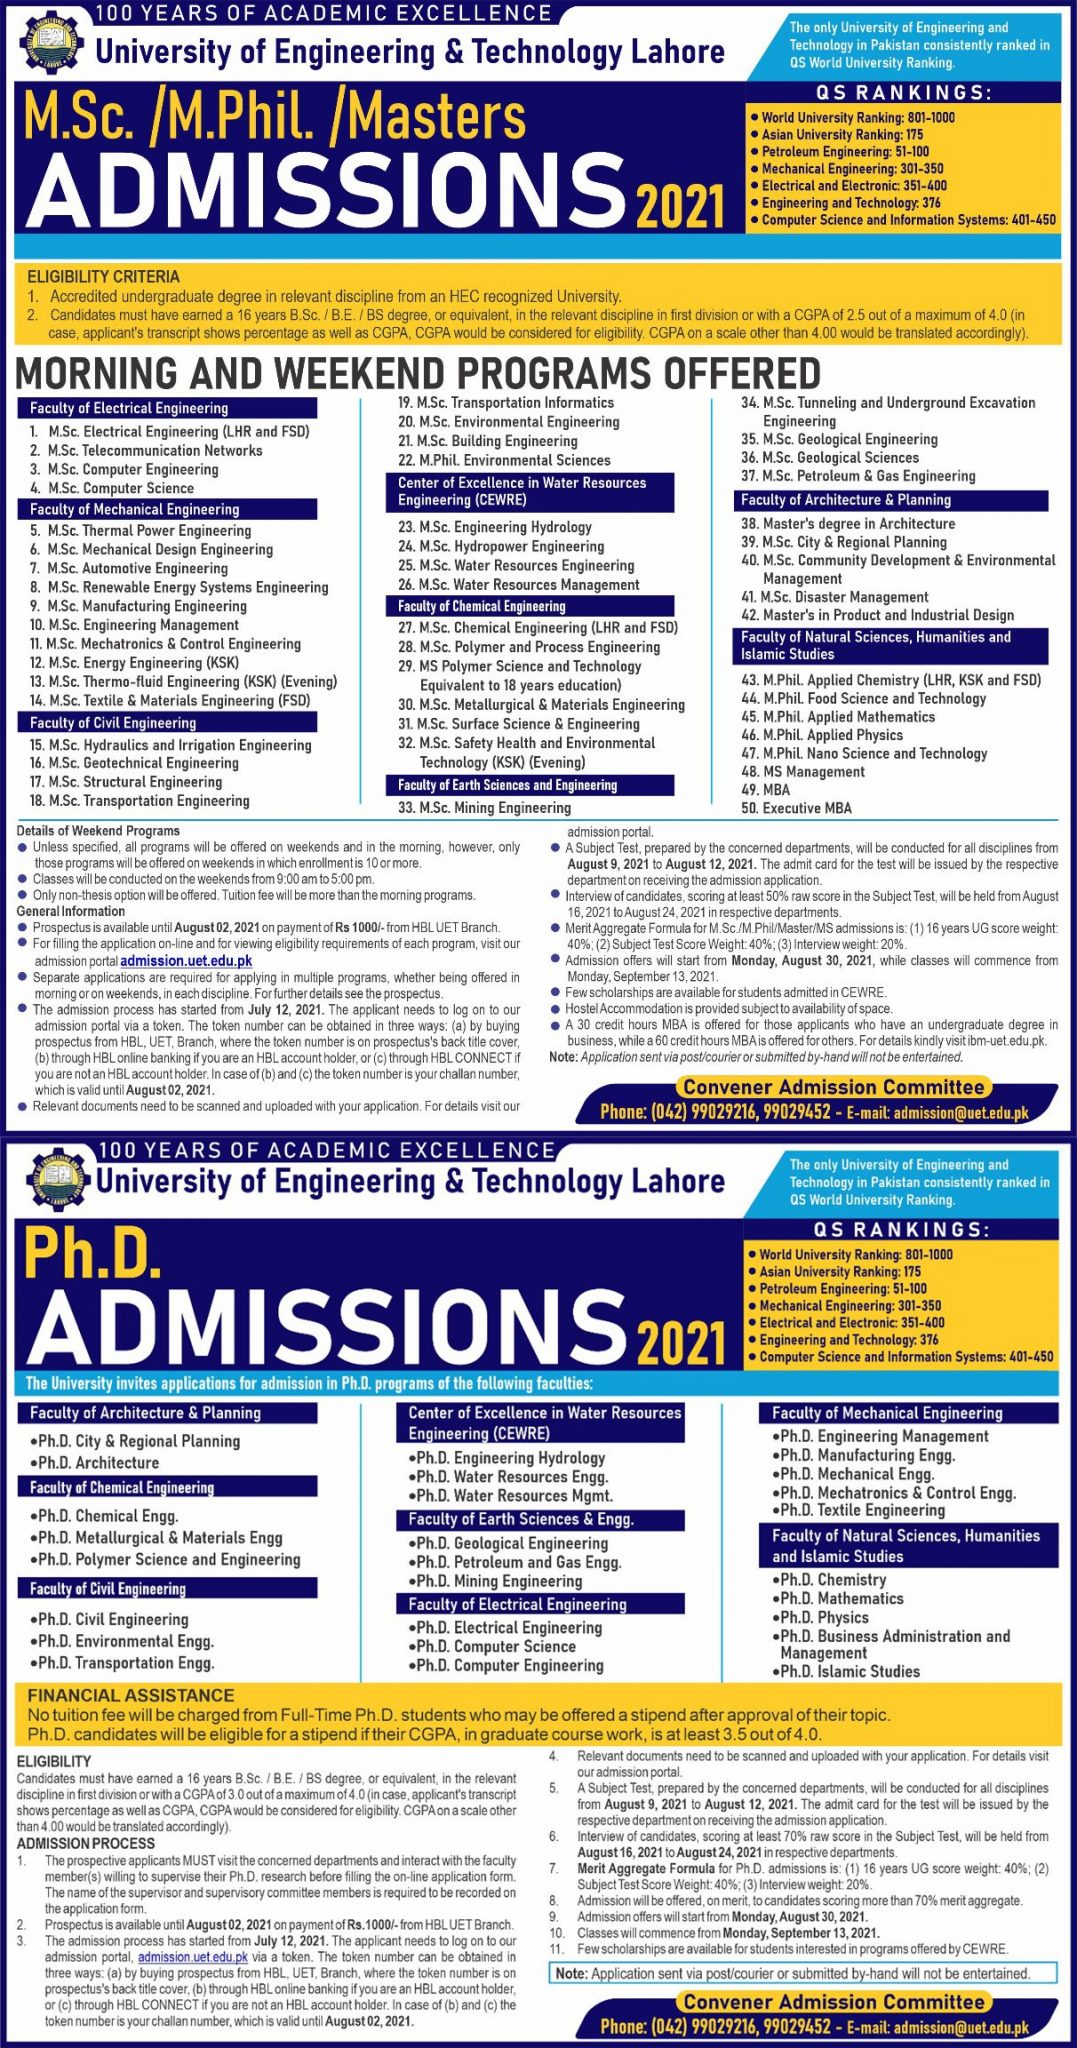 University of Engineering and Technology UET Lahore Admission 2021